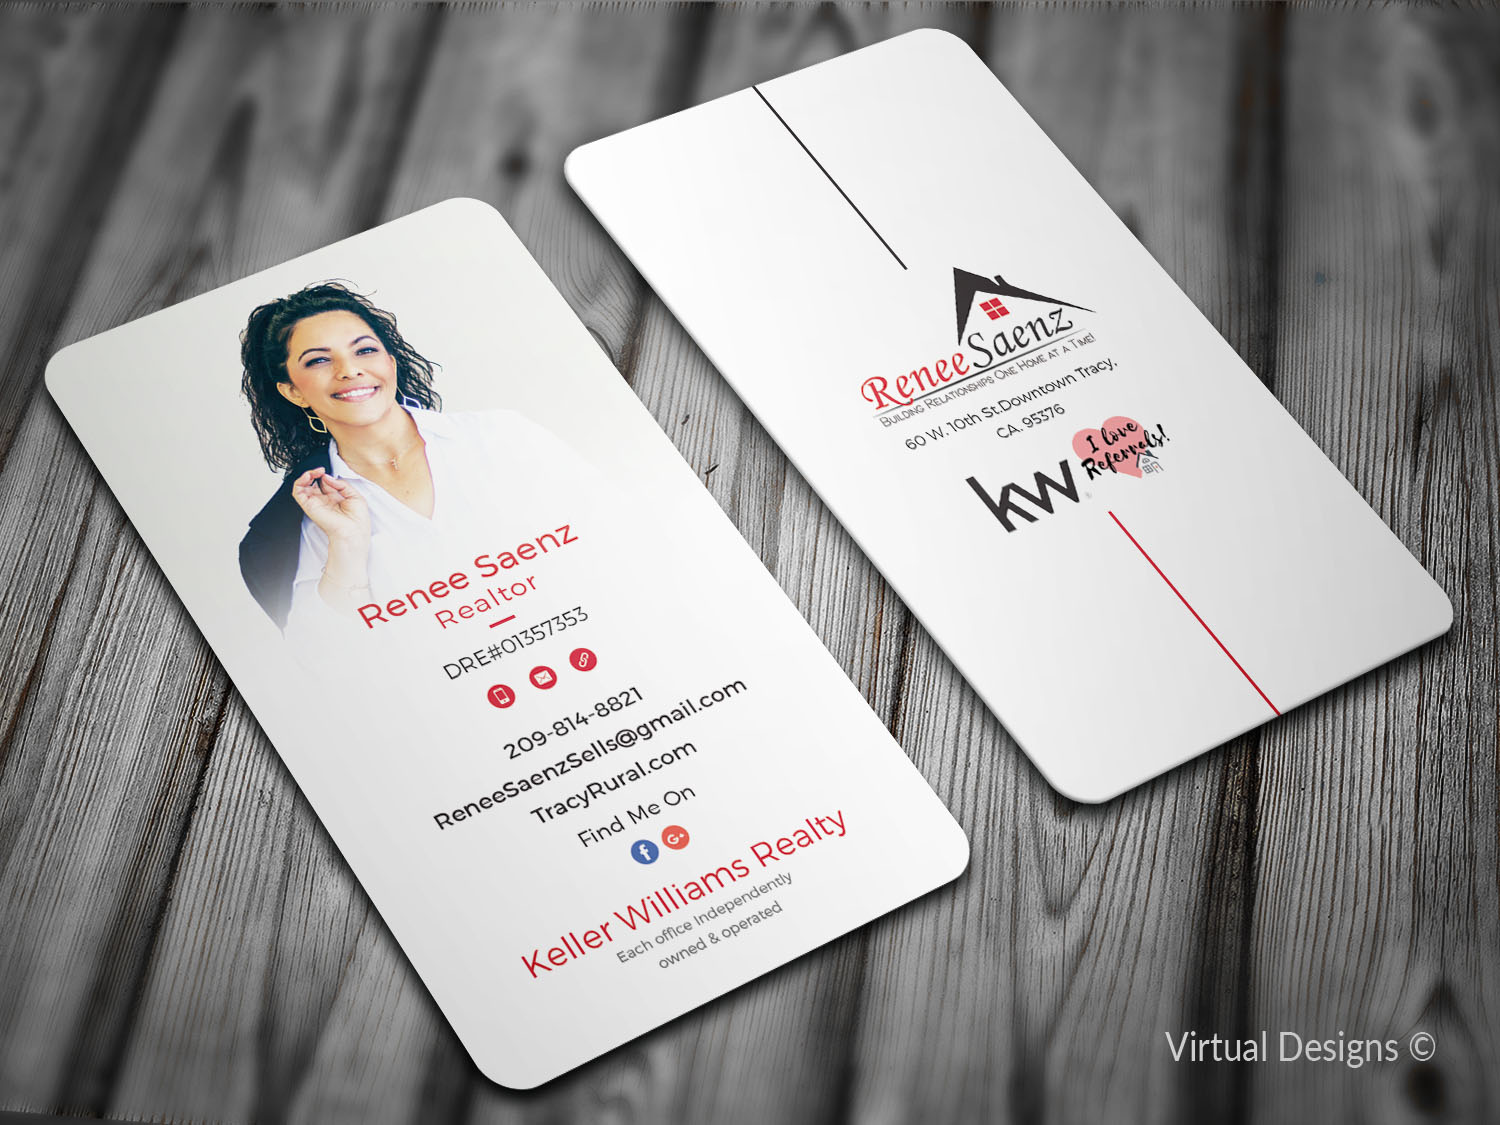 73 colorful business card designs real estate agent business card business card design by virtual designs for this project design 19313779 reheart Choice Image